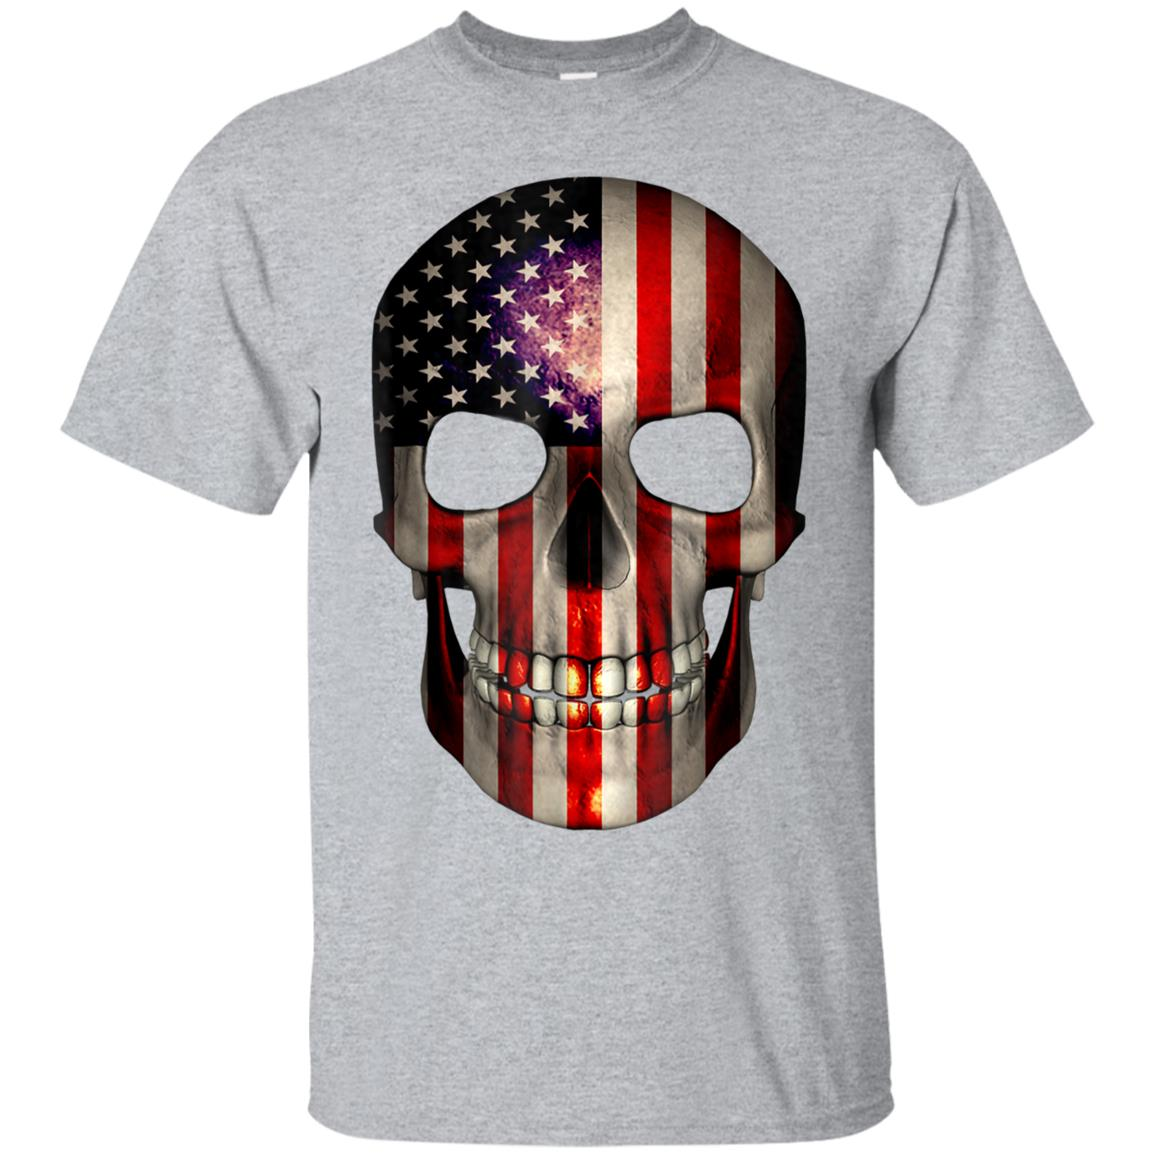 4th of July T Shirt American Flag Skull USA Birthday Gift 99promocode